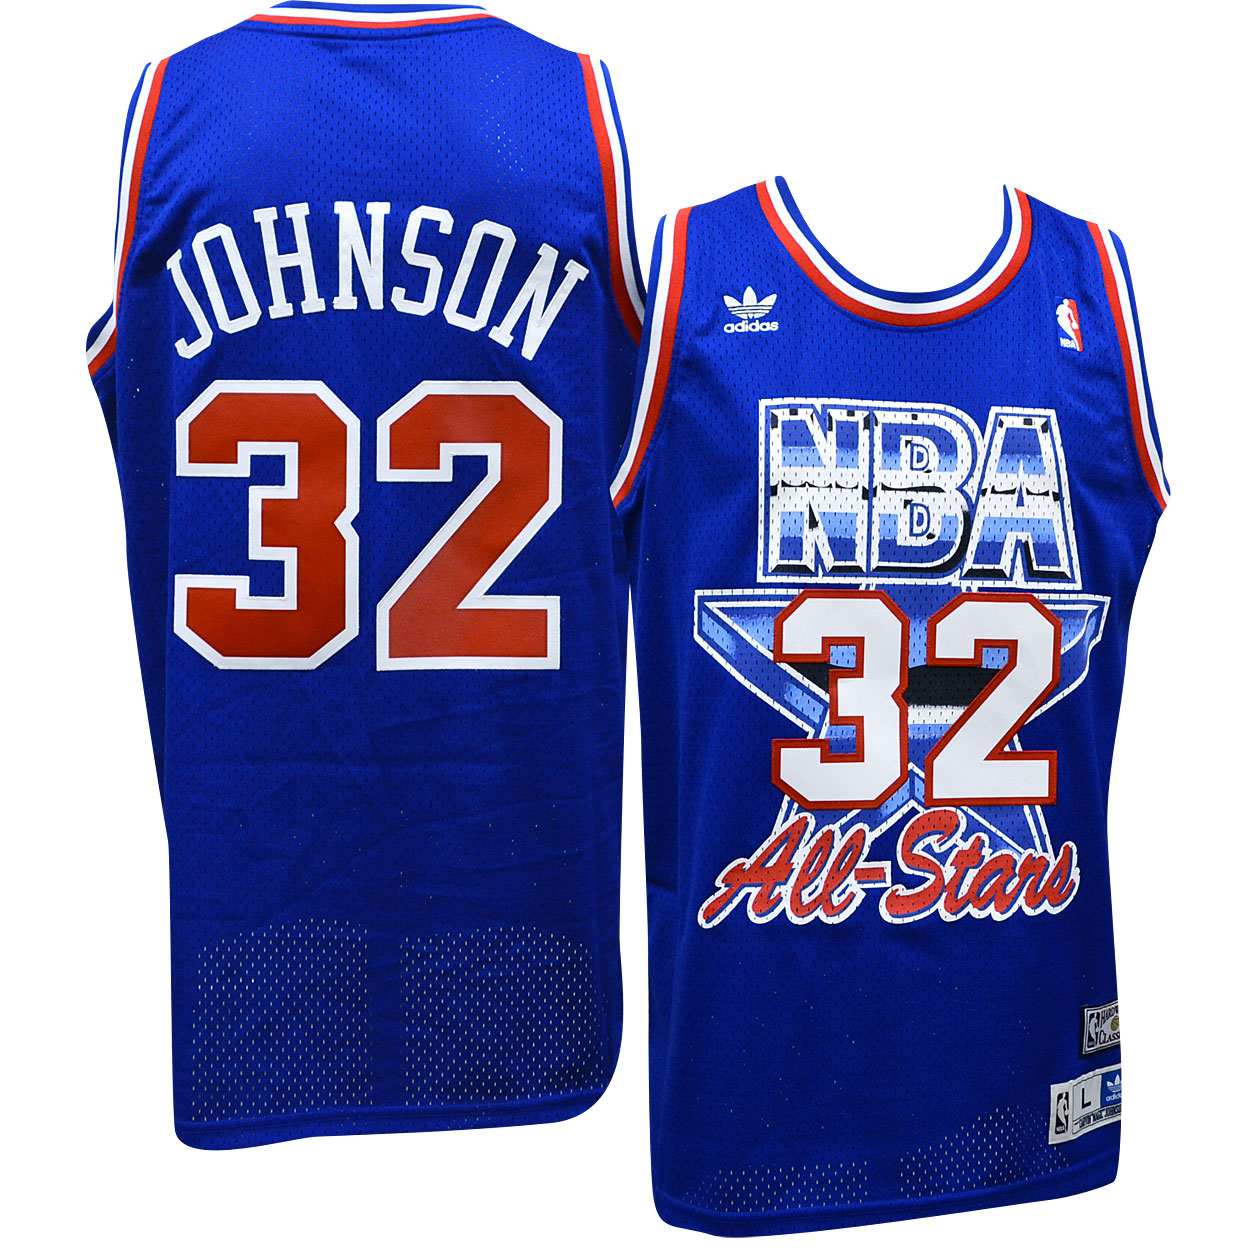 d81d95eb2 Details about Magic Johnson Lakers Adidas NBA 1992 All-Star Game Swingman  Jersey XL